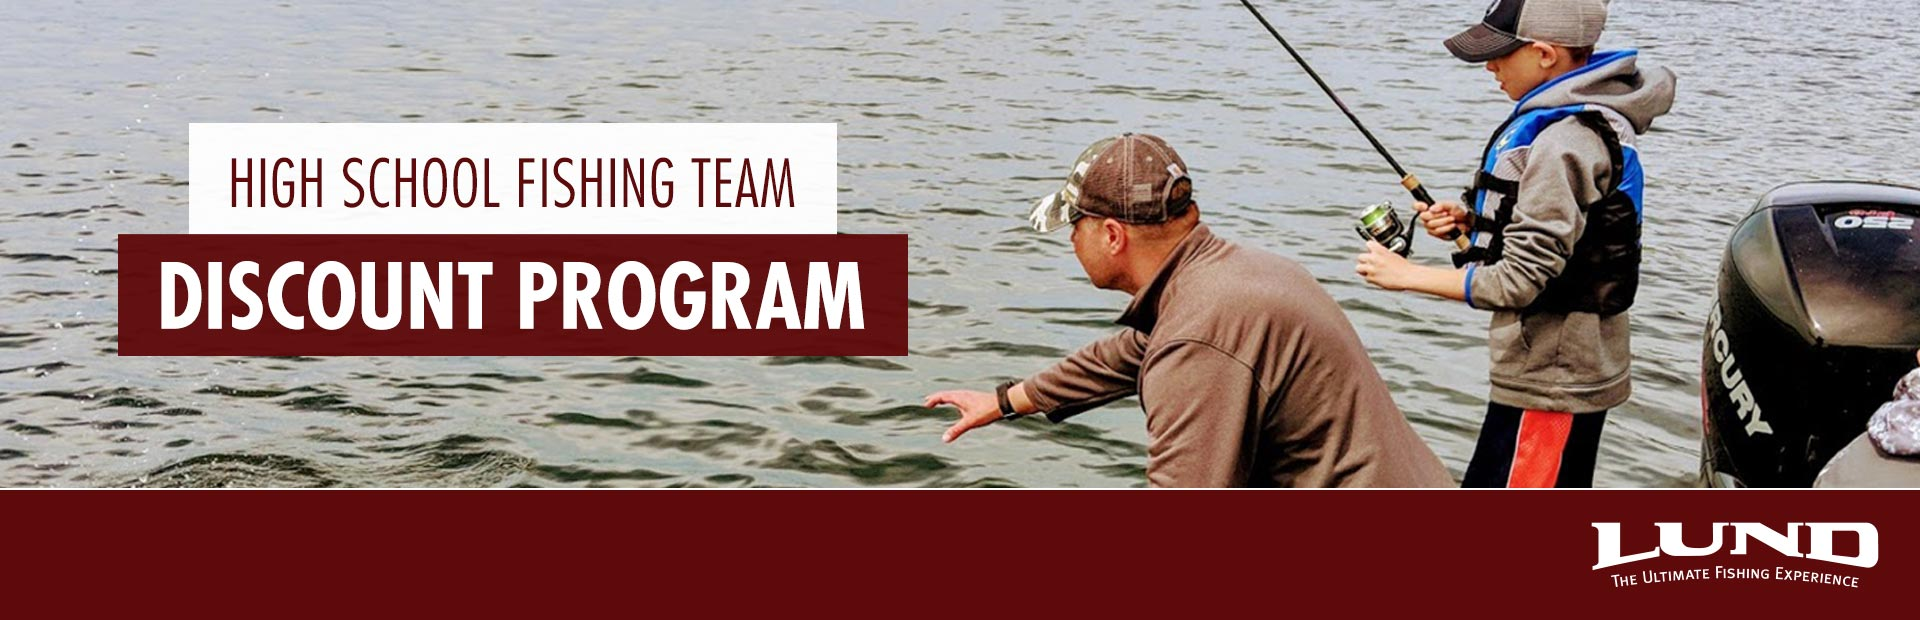 Lund: High School Fishing Team Discount Program